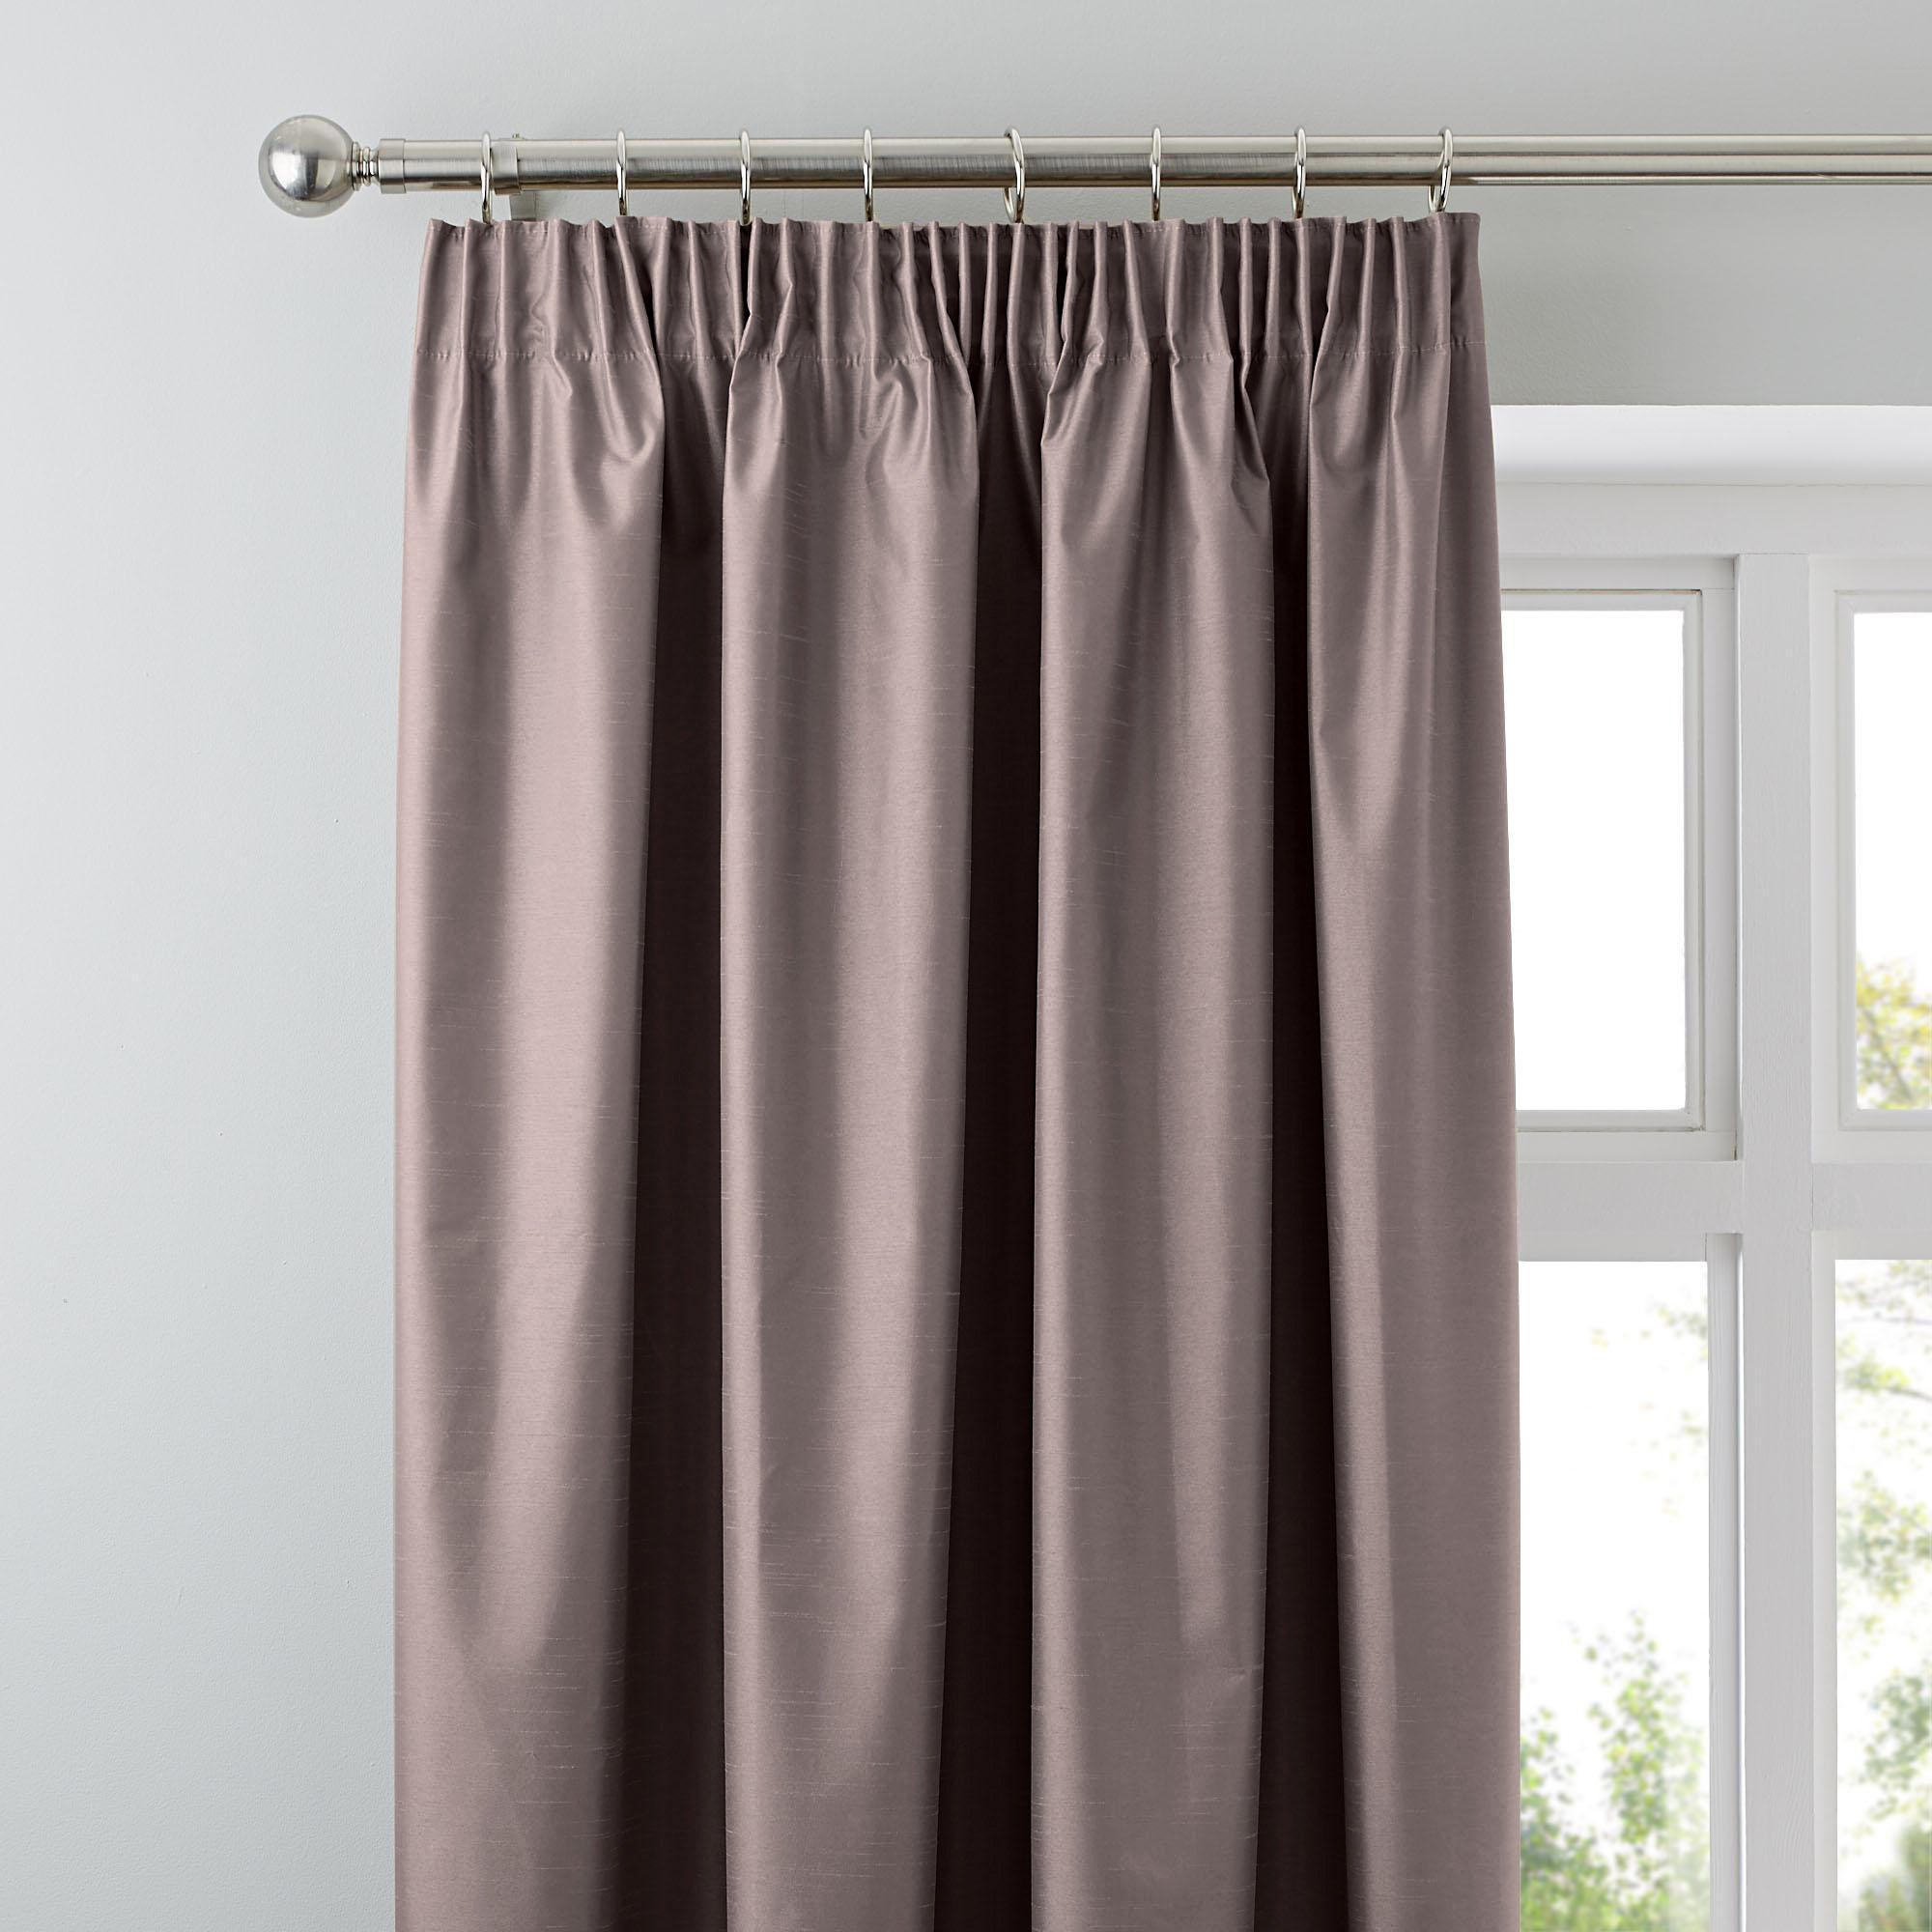 Gold Nova Blackout Pencil Pleat Curtains